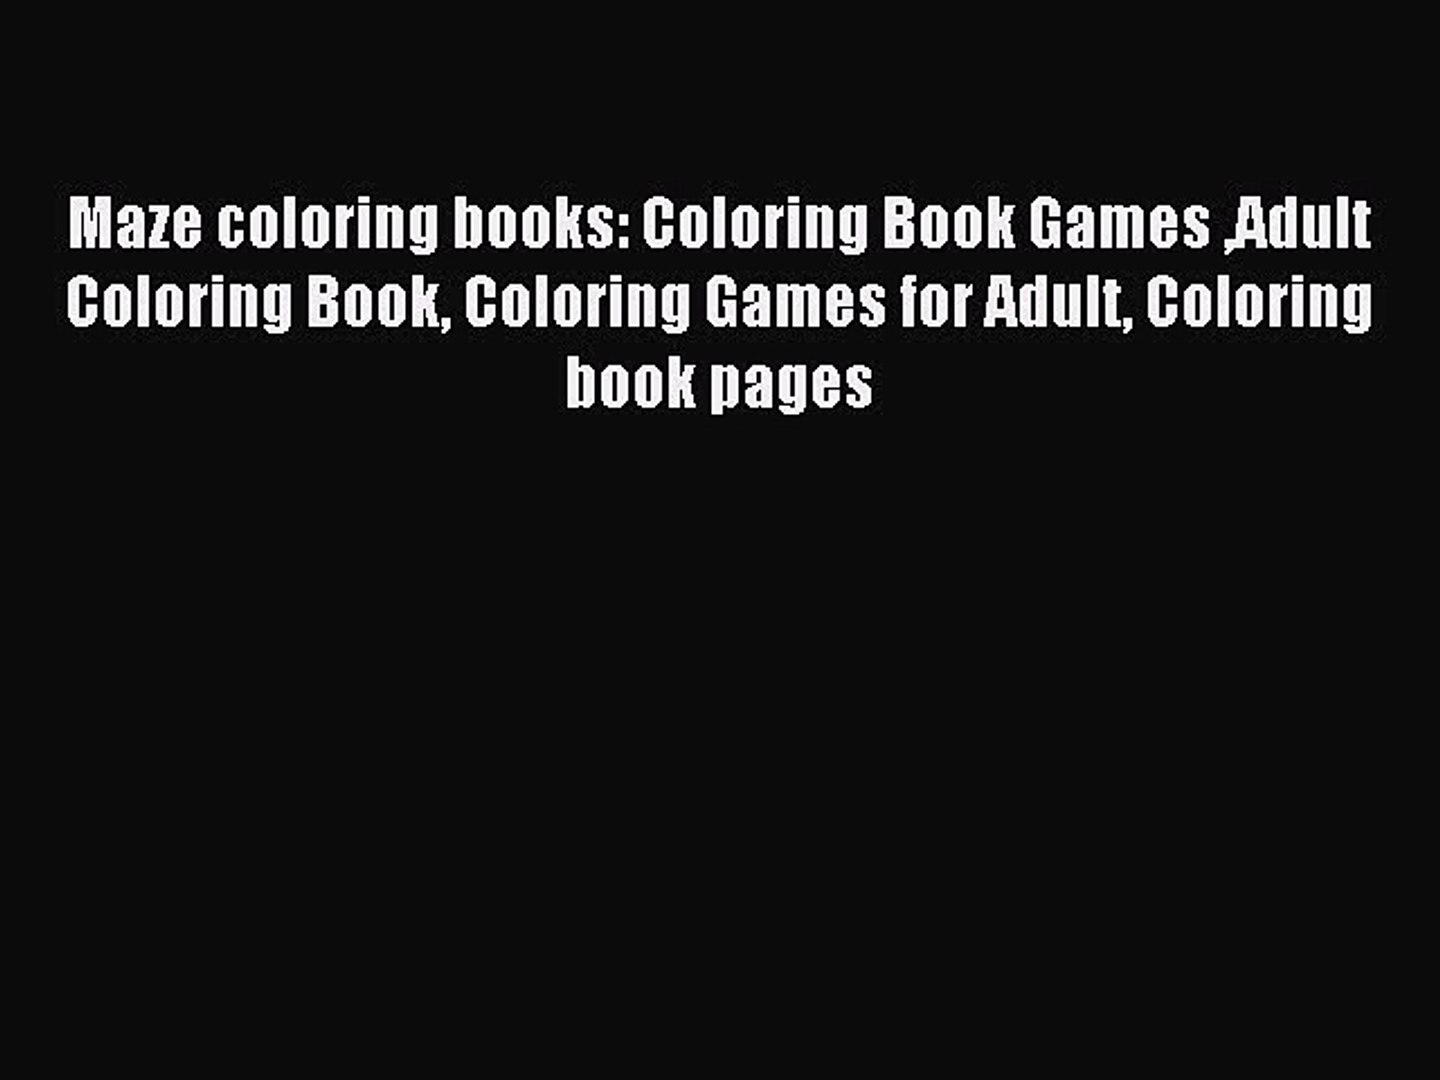 Read Maze coloring books: Coloring Book Games Adult Coloring Book Coloring  Games for Adult